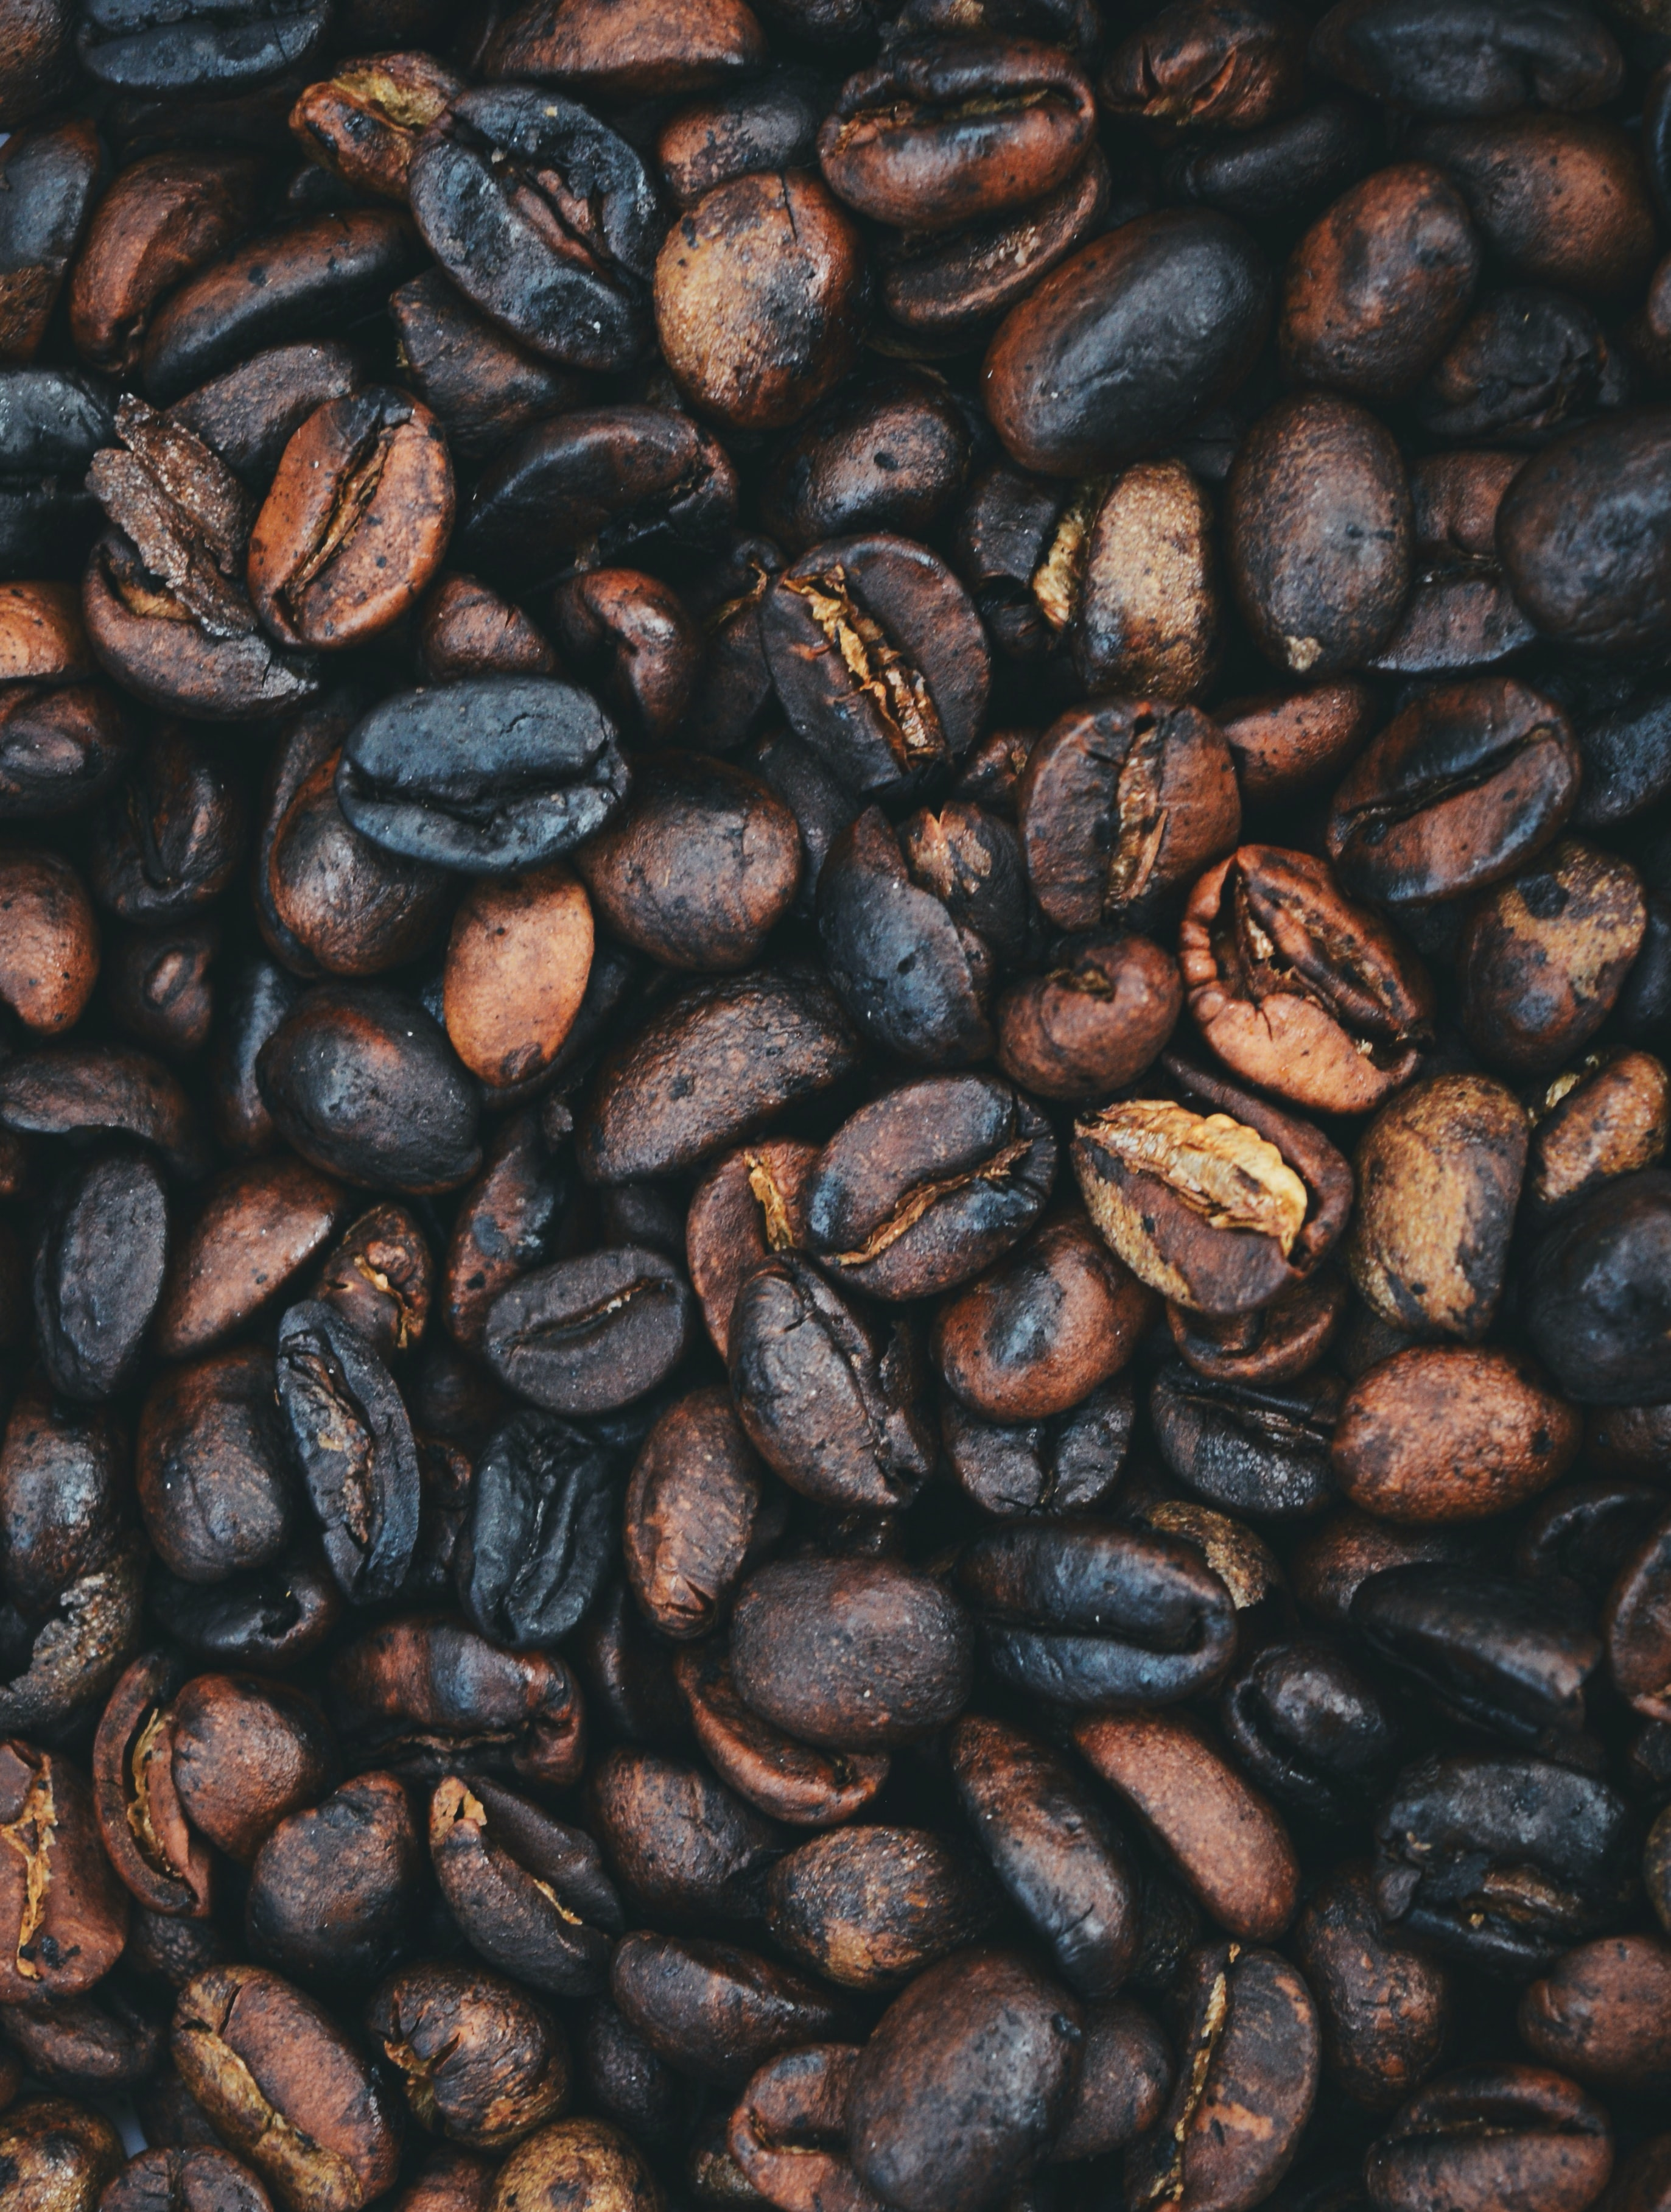 79305 download wallpaper Food, Grains, Grain, Coffee, Coffee Beans, Macro screensavers and pictures for free